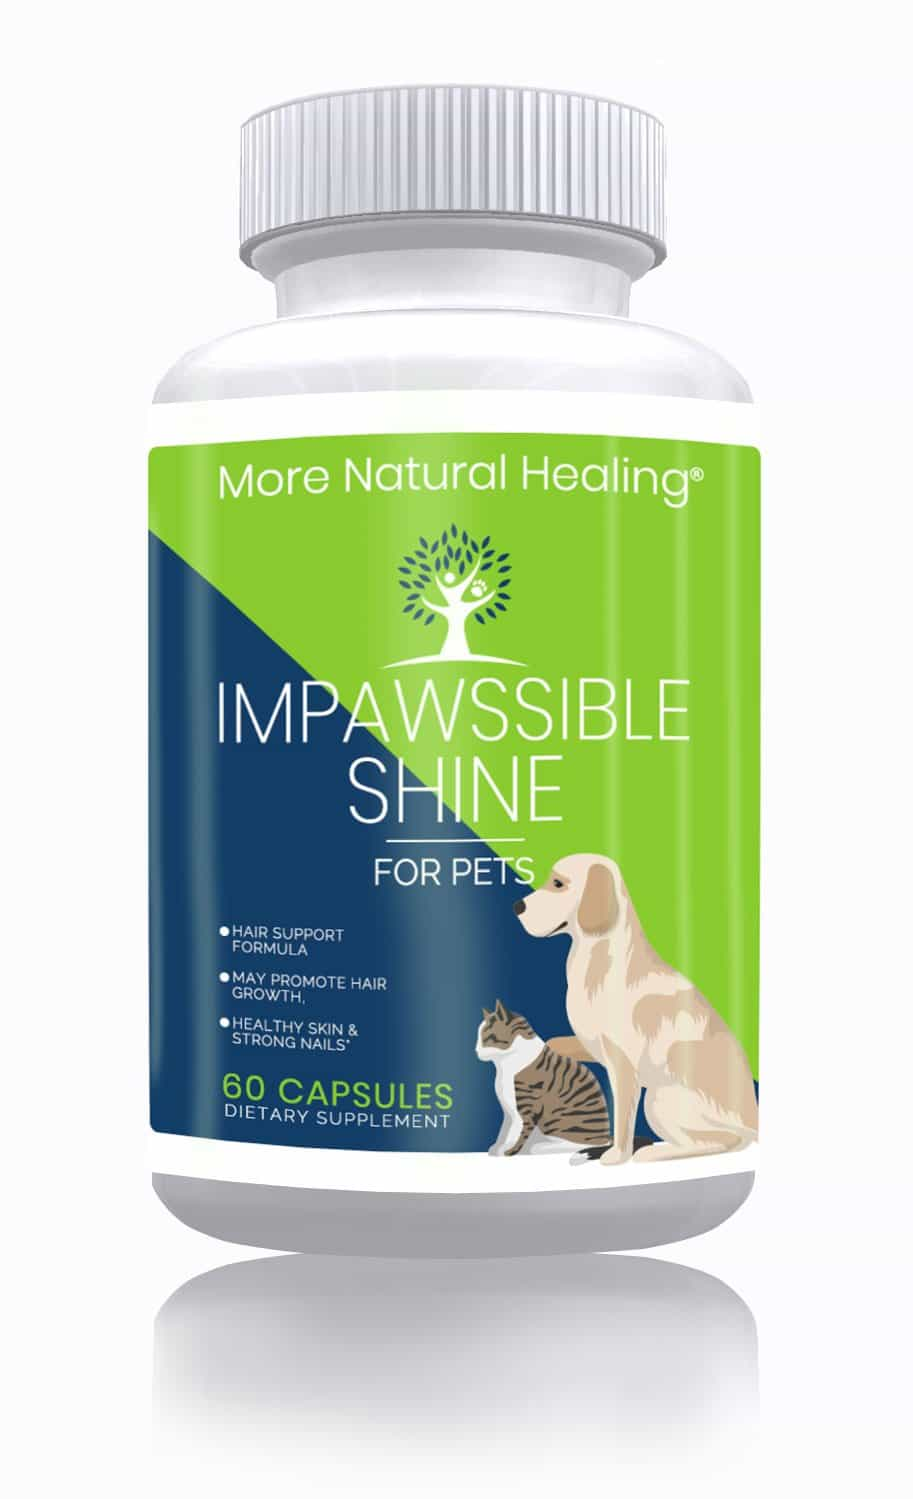 ImPawssible Shine for Pets Skin, Hair and Nails Supplement - More Natural Healing